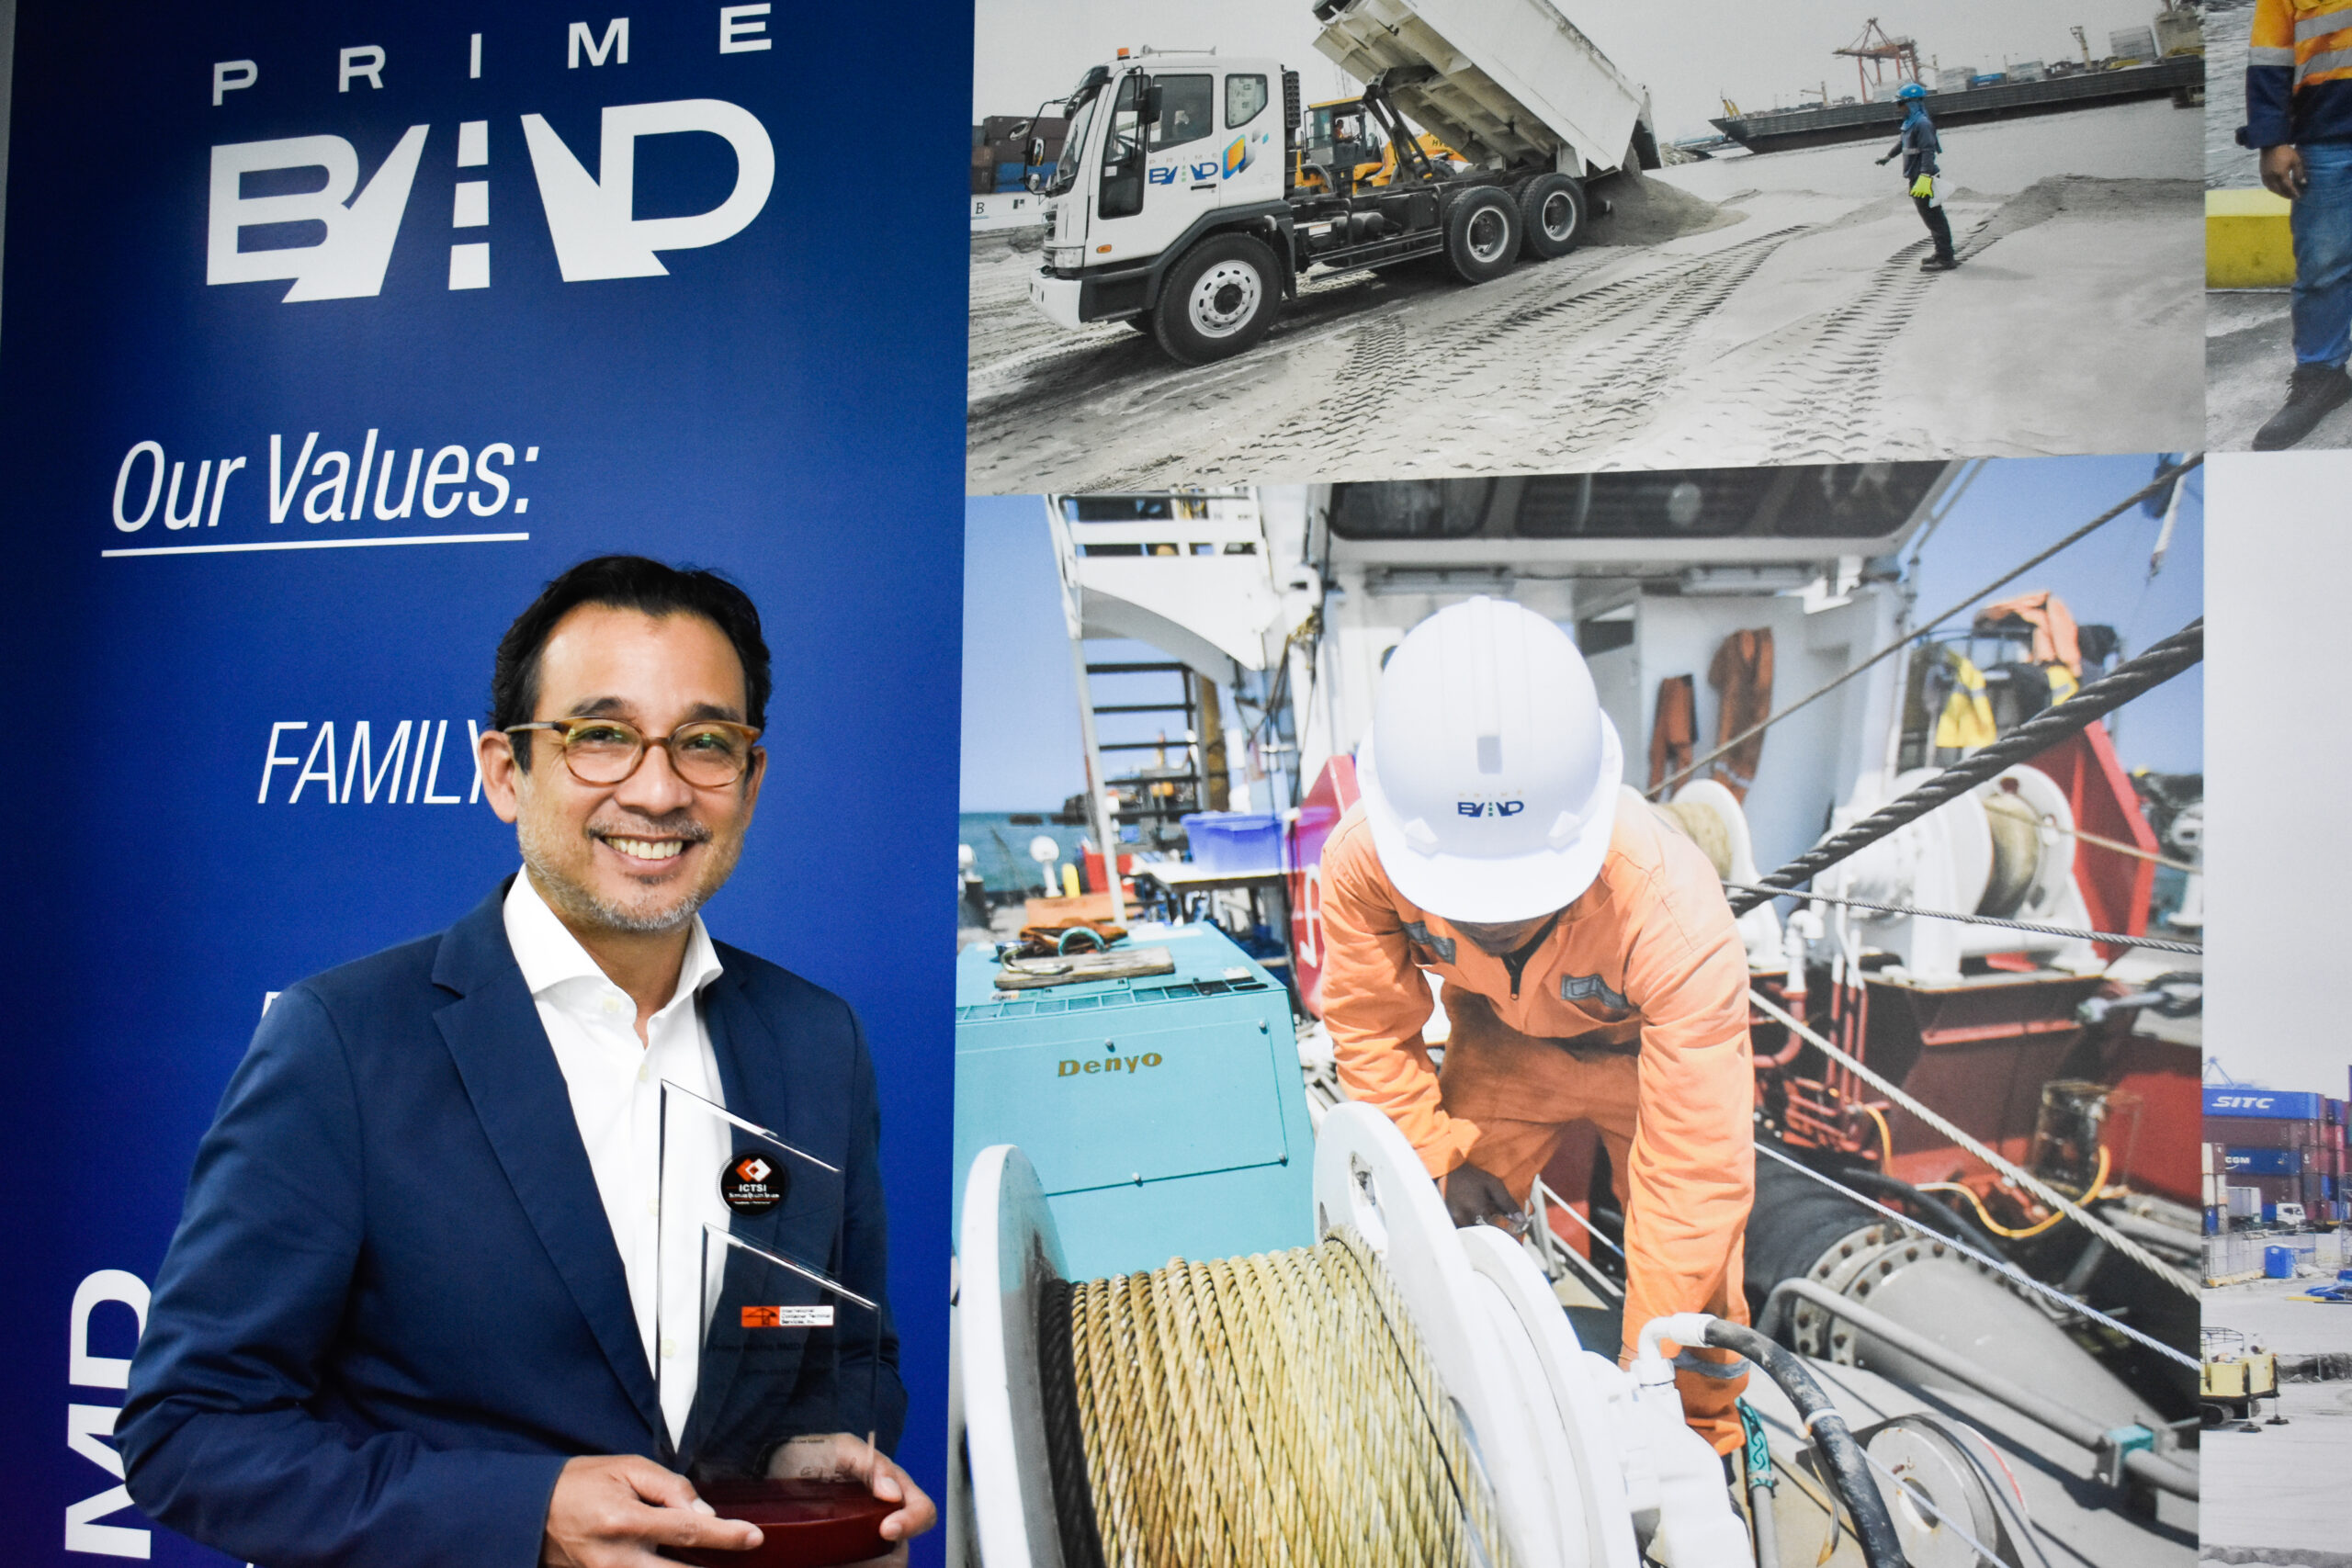 PrimeBMD wins 12th ICTSI Supplier Quality Awards